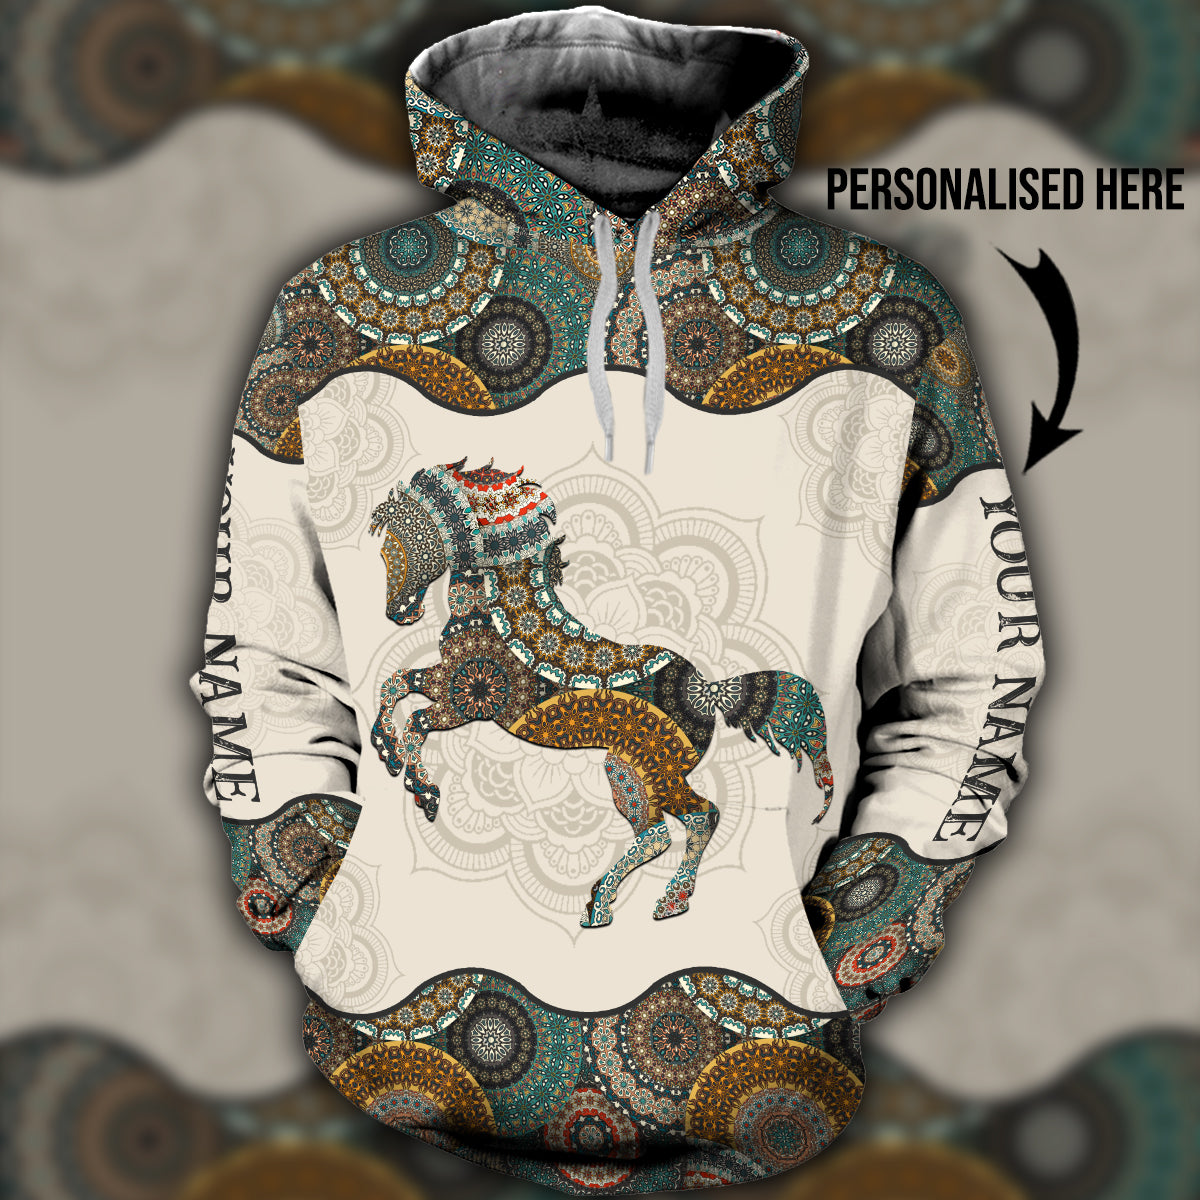 Horse hippie 3D hoodie customized name - aavh22102001